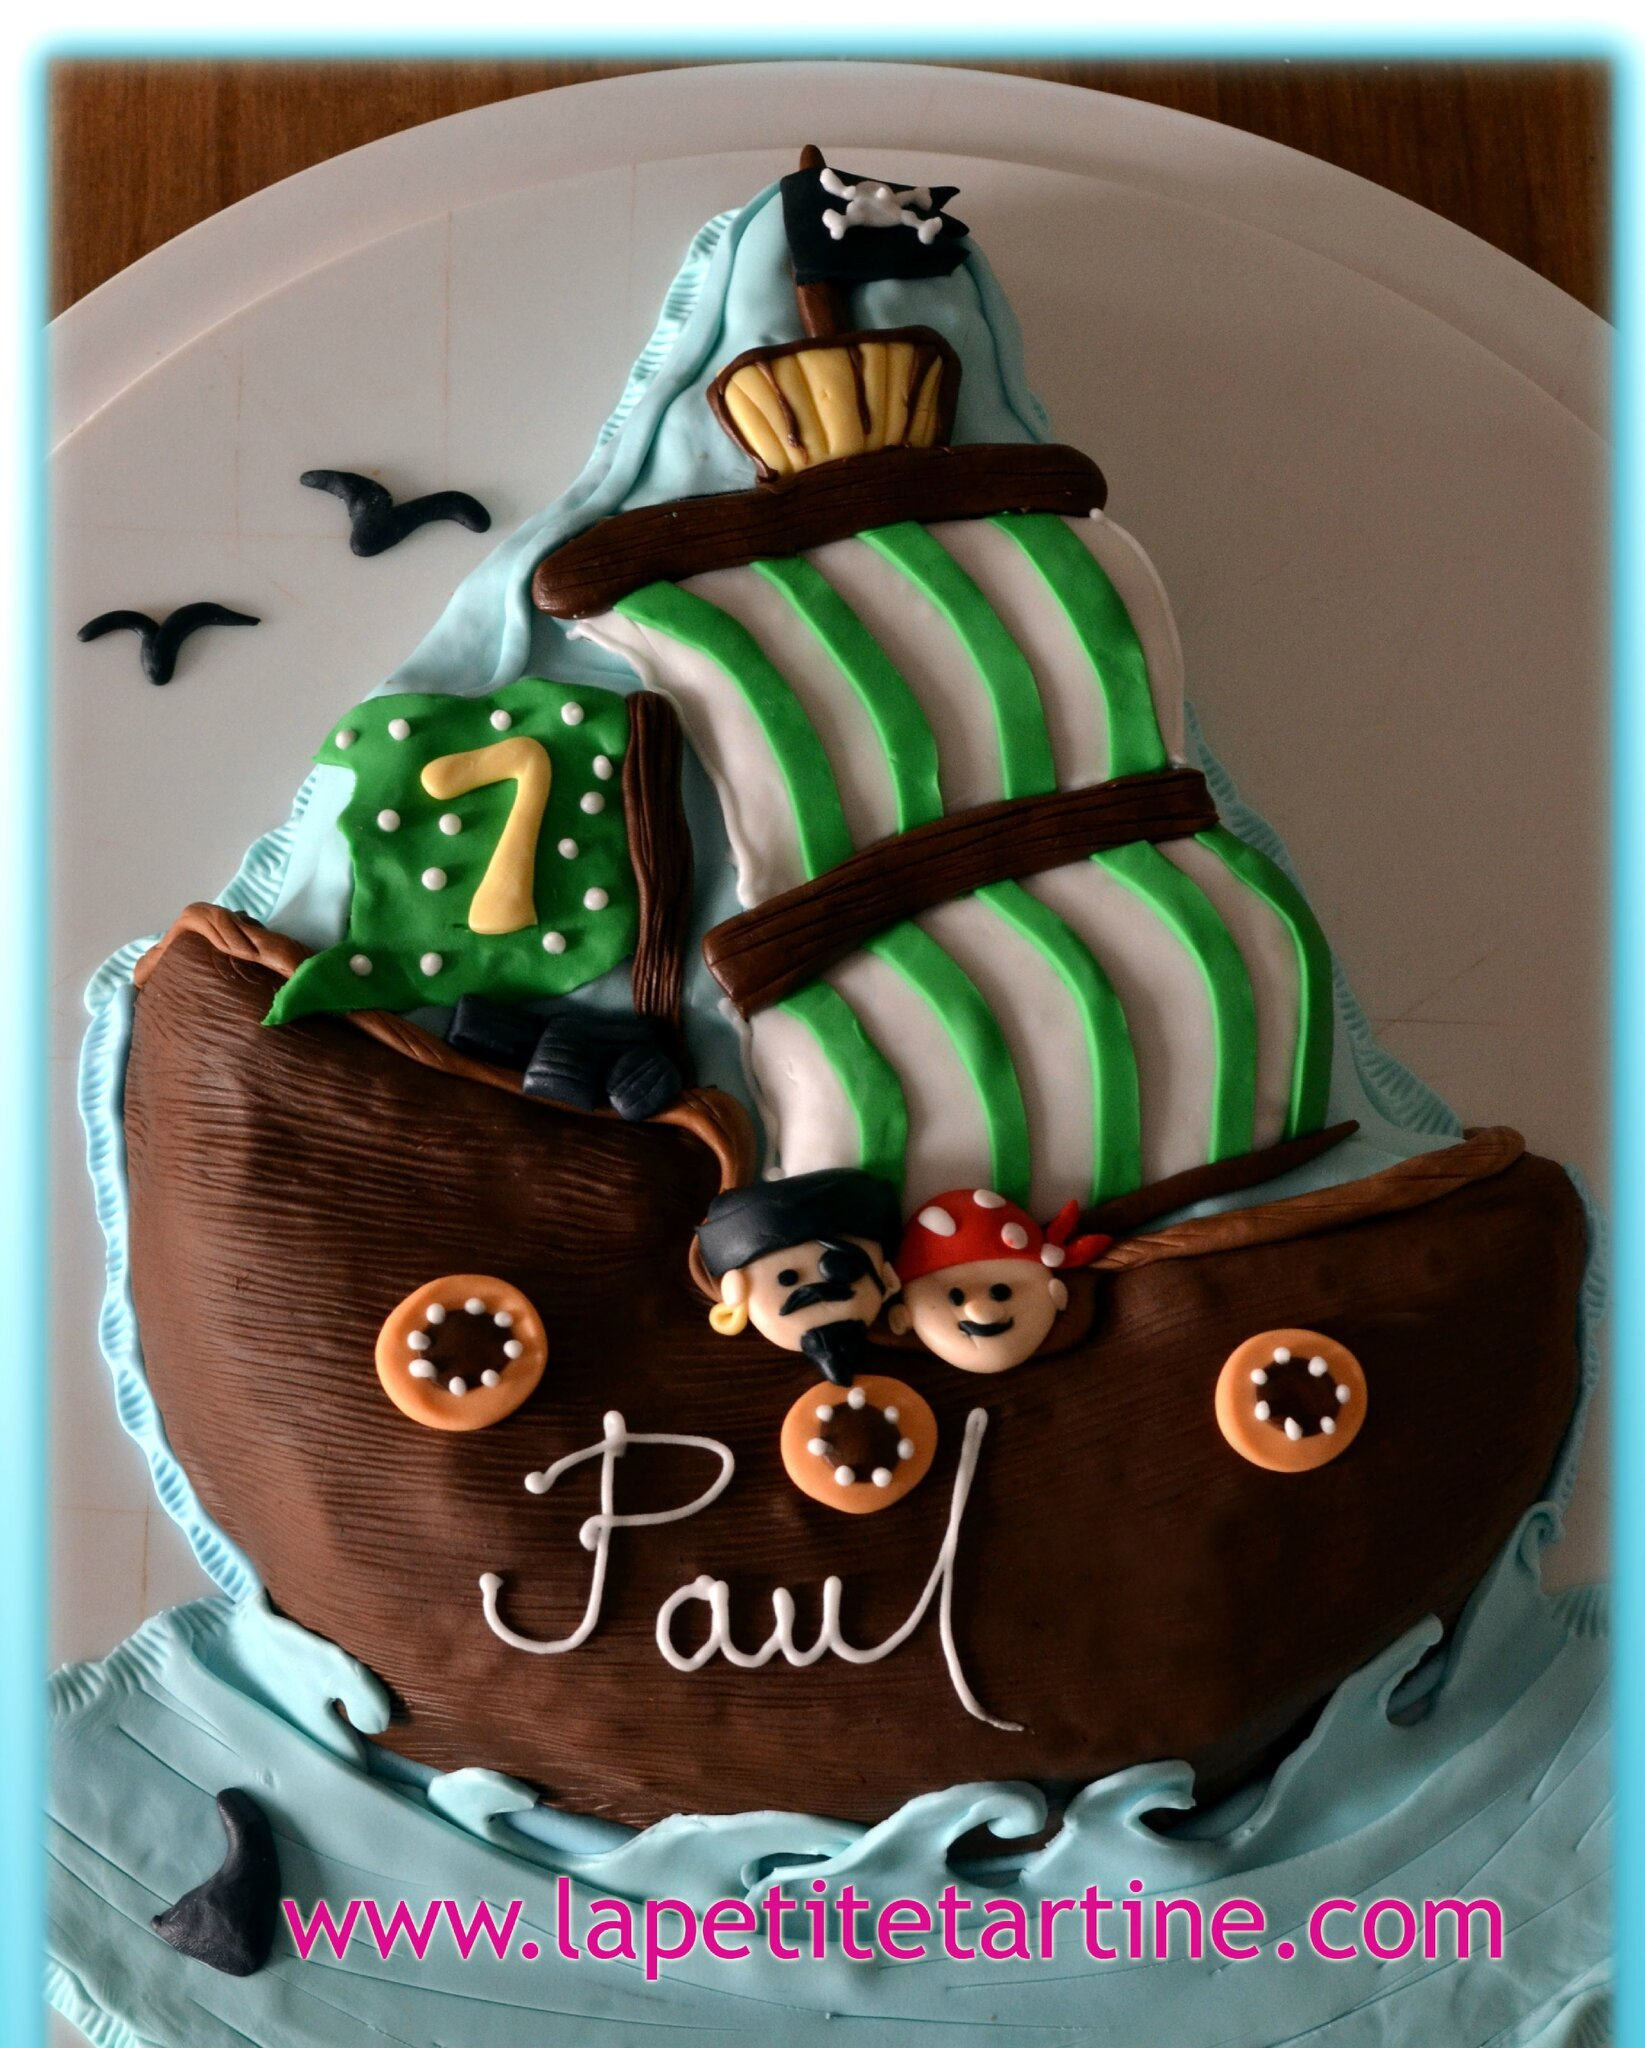 bâteau pirate